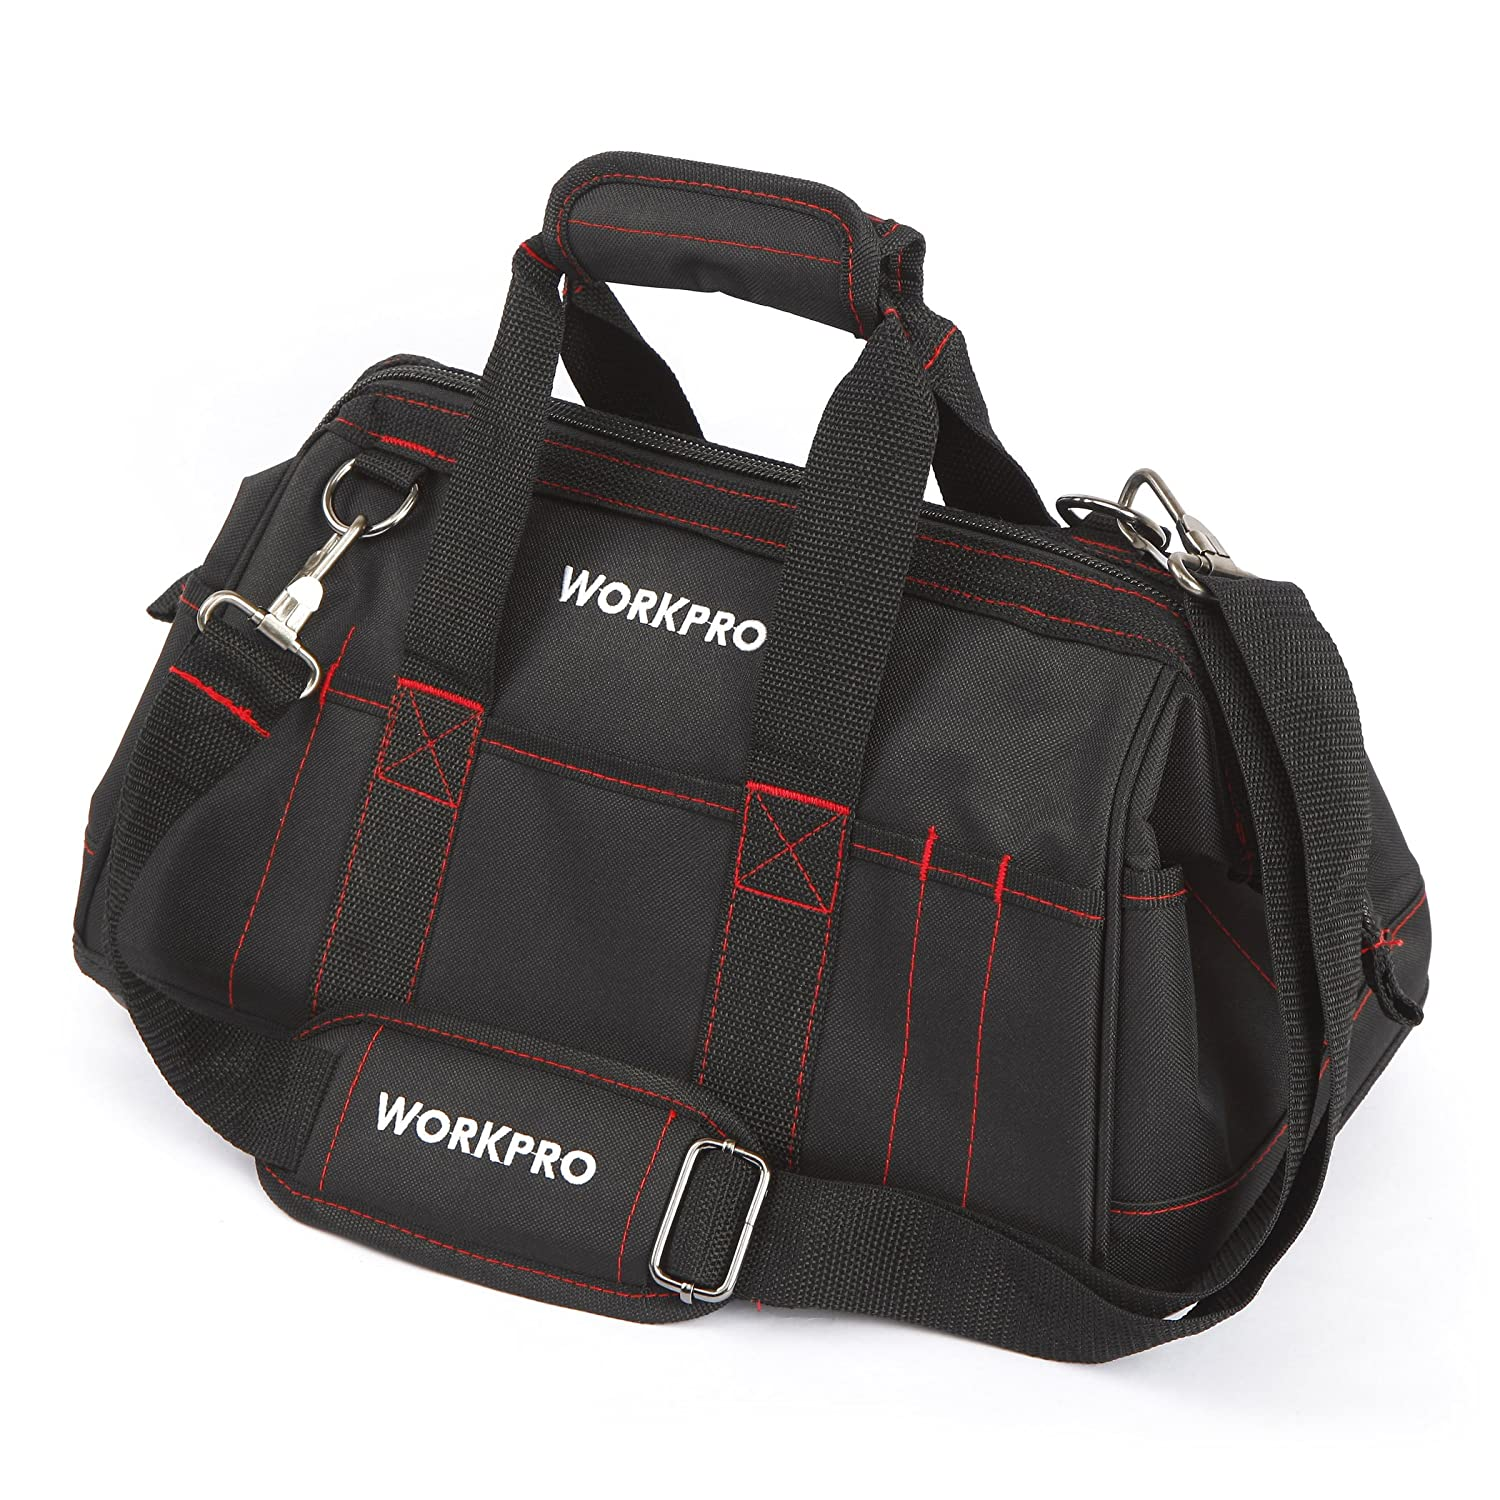 Workpro W081022a 16 Inch Close Top Wide Mouth Tool Storage Bag With Dompet Wanita Rc550 Water Proof Rubber Base